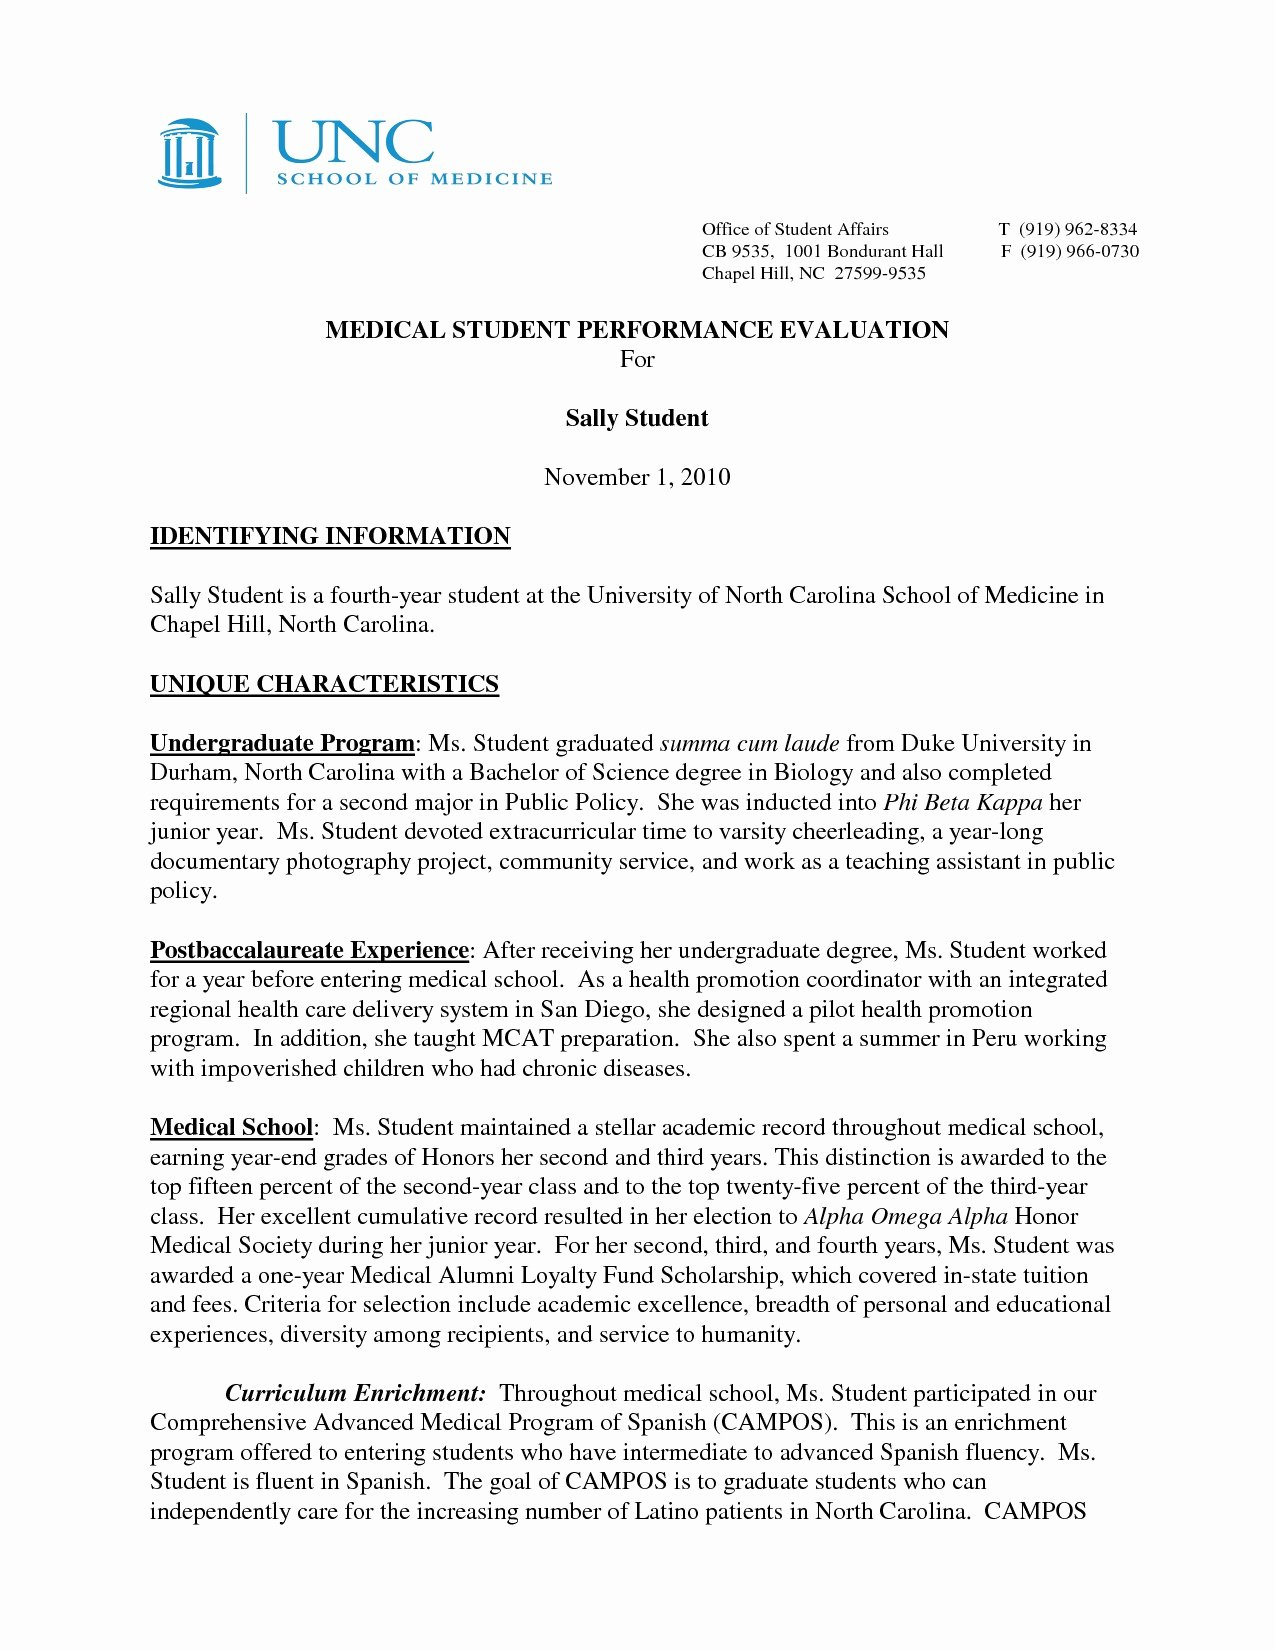 Sample Medical School Recommendation Letter Unique Sample Re Mendation Letter for Medical Graduate School